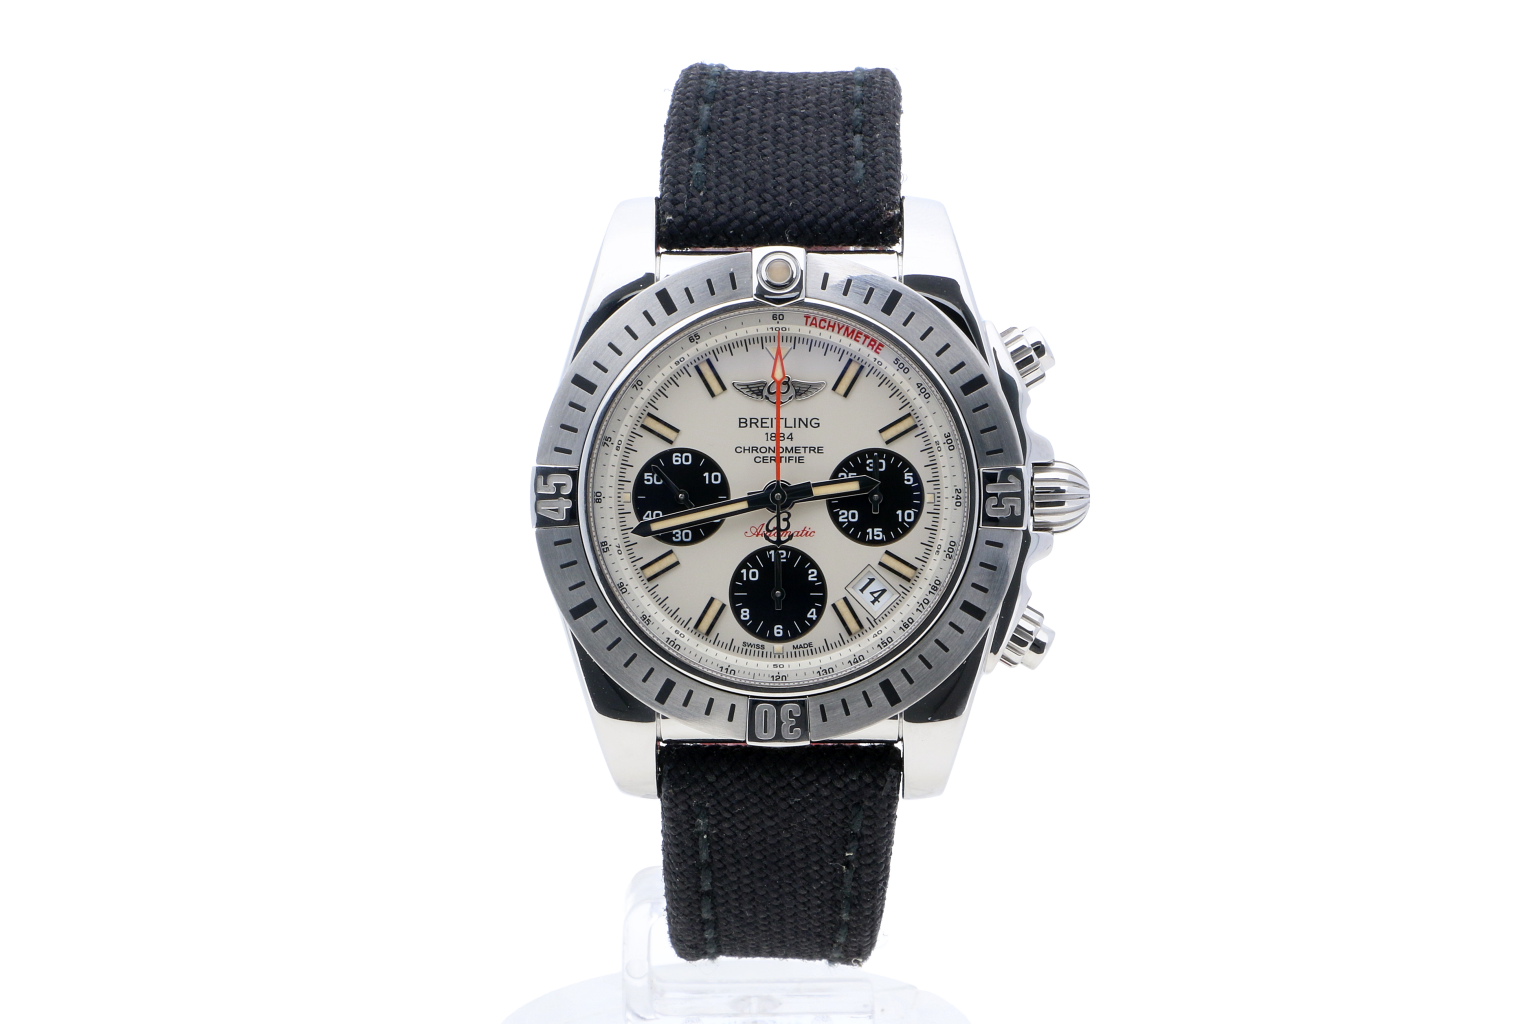 Breitling Chronomat 41 Airborne Silver Military Strap (Fabric) Folding Clasp